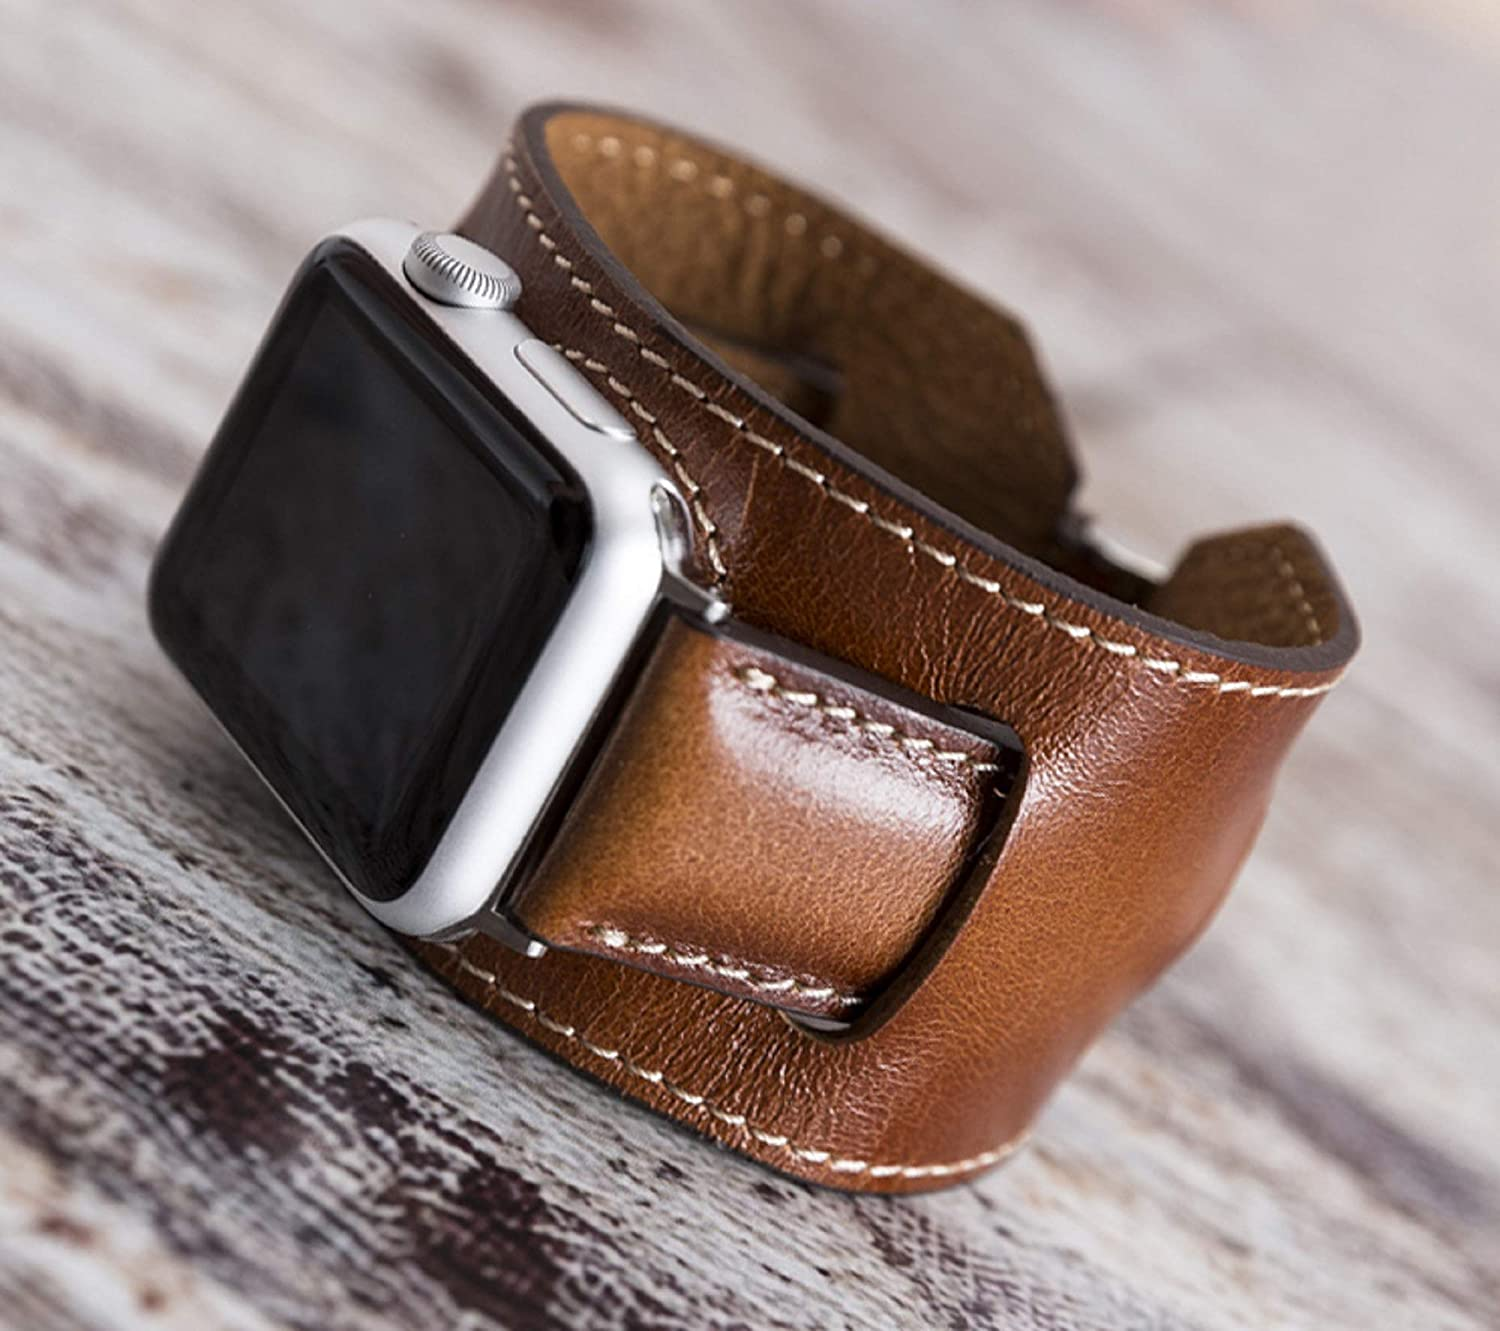 Brown Apple Watch Cuff Leather Band for Series 6-5-4-3-2-1 44mm, 40mm, iWatch Strap, Man or Women, High Quality, Engraving Avaliable, HANDMADE